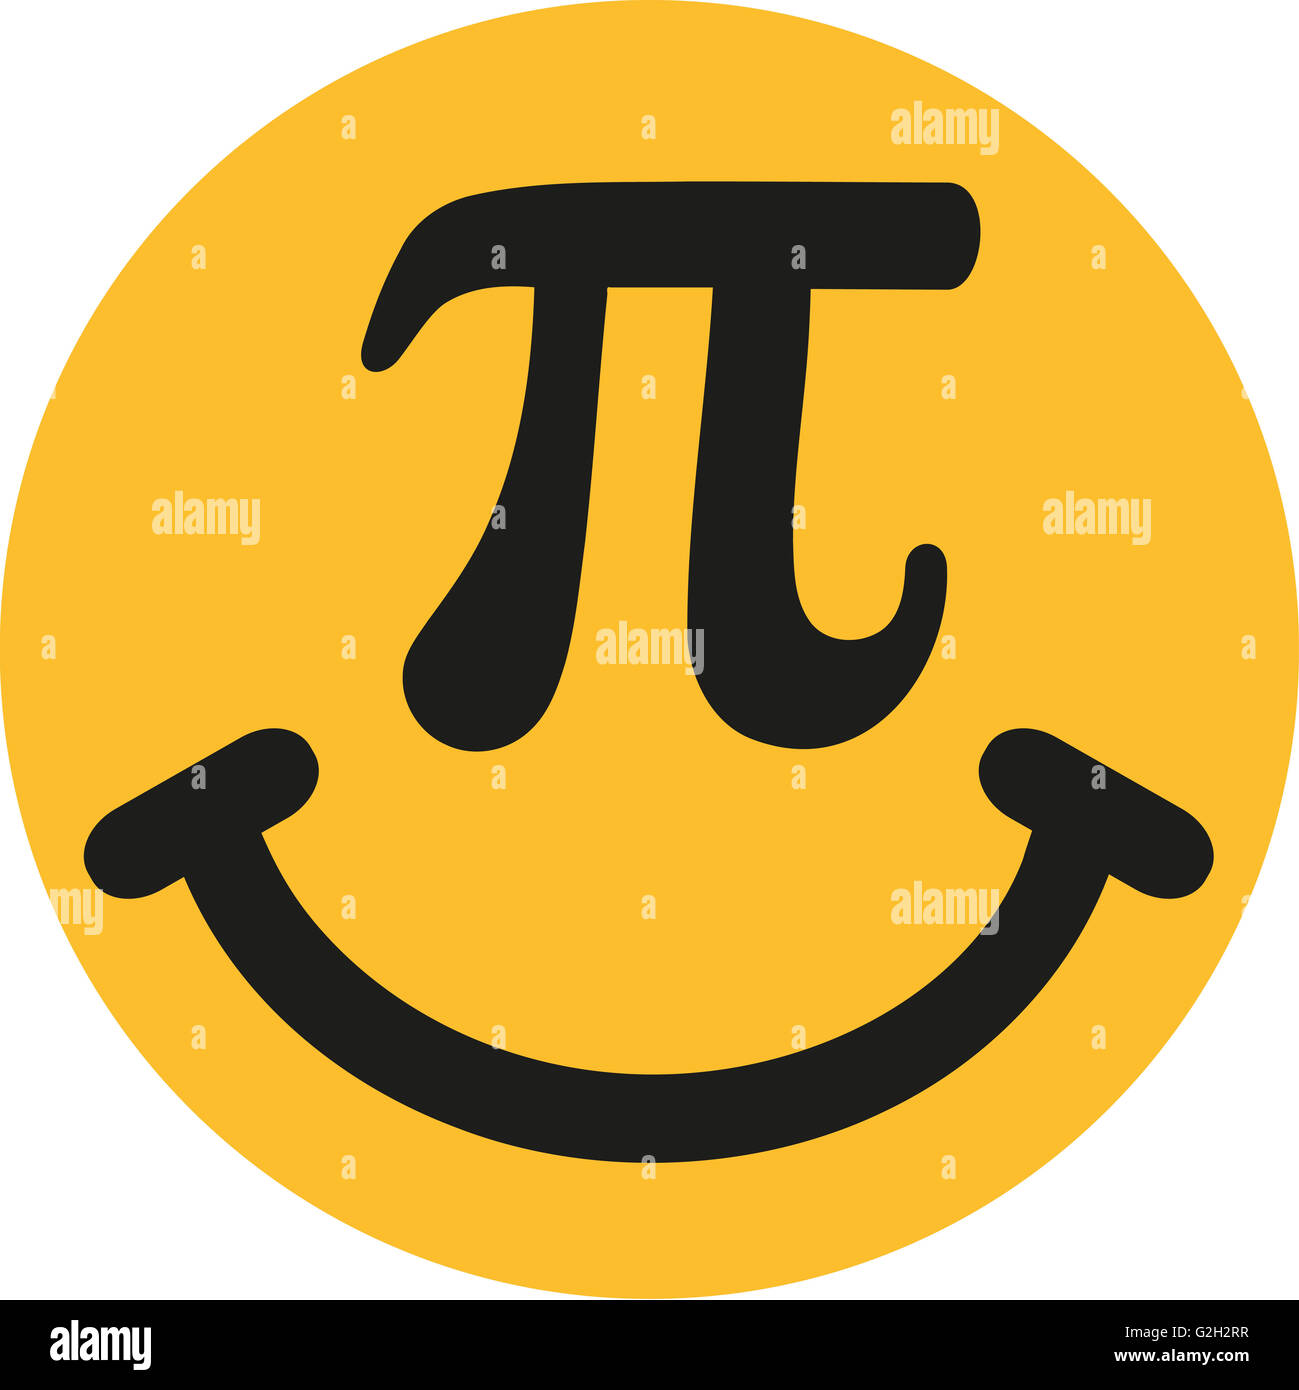 Smiley with pi sign - Stock Image